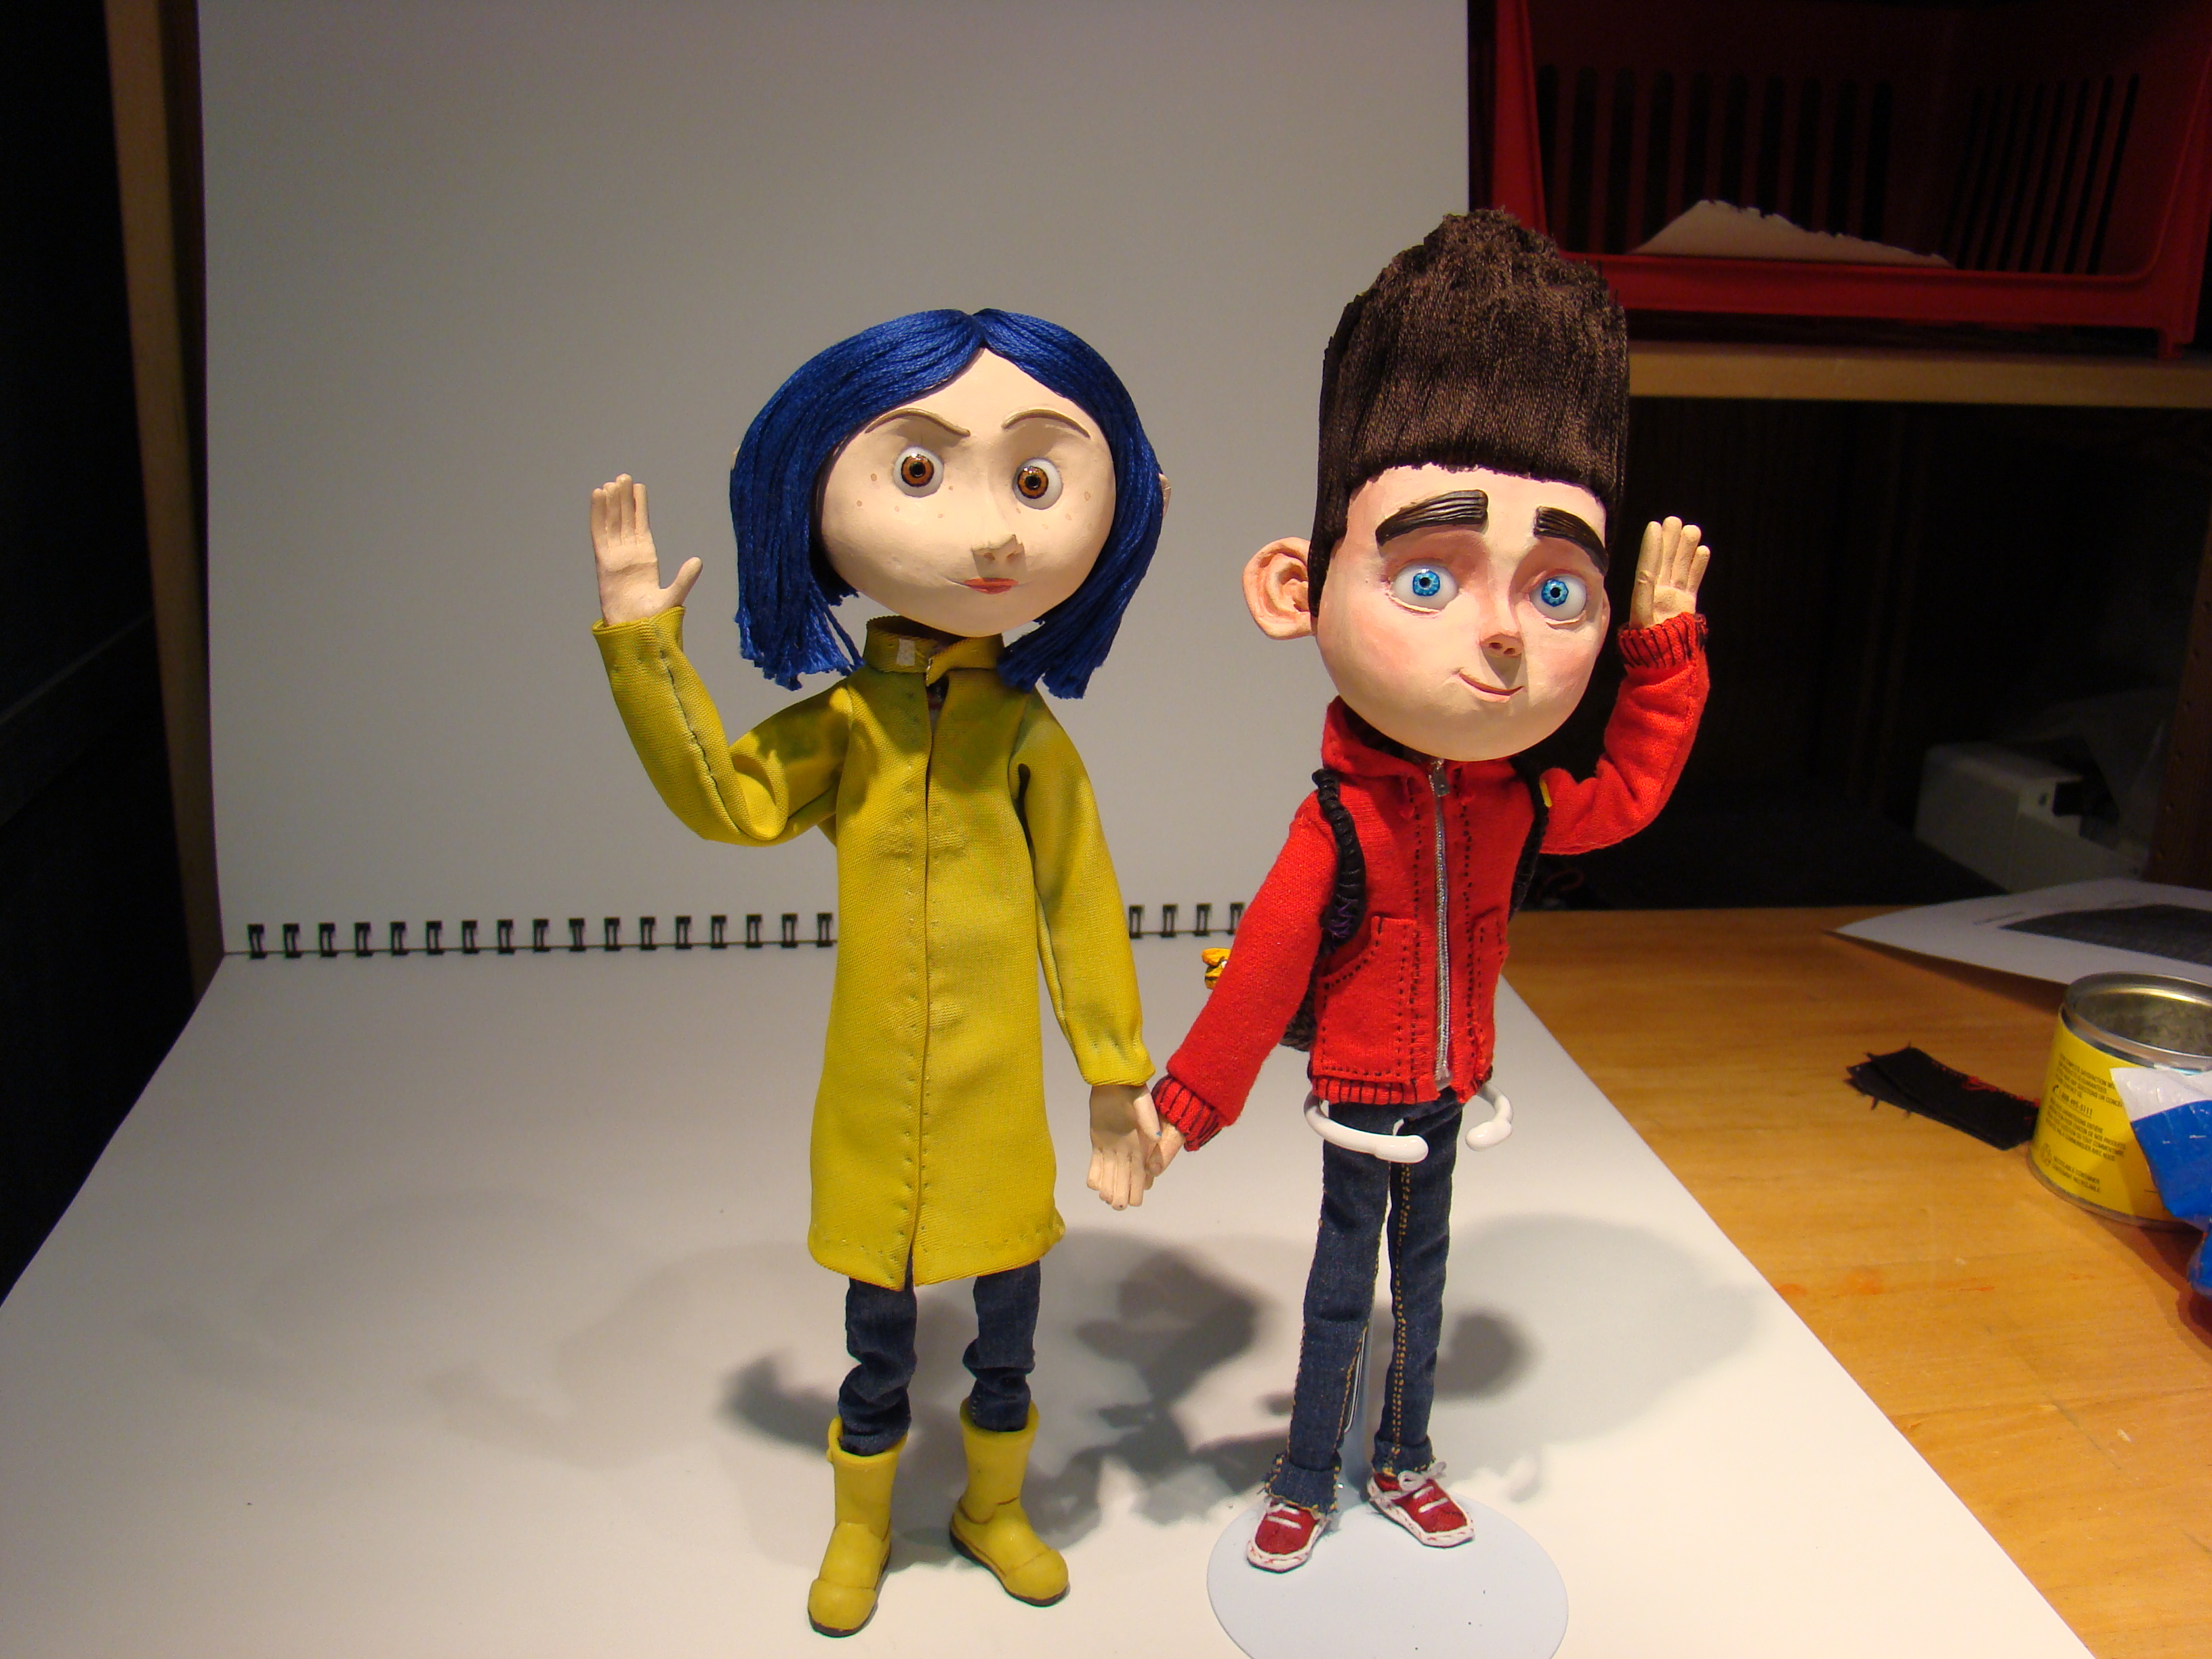 Norman and Coraline by Kristheblade on DeviantArt